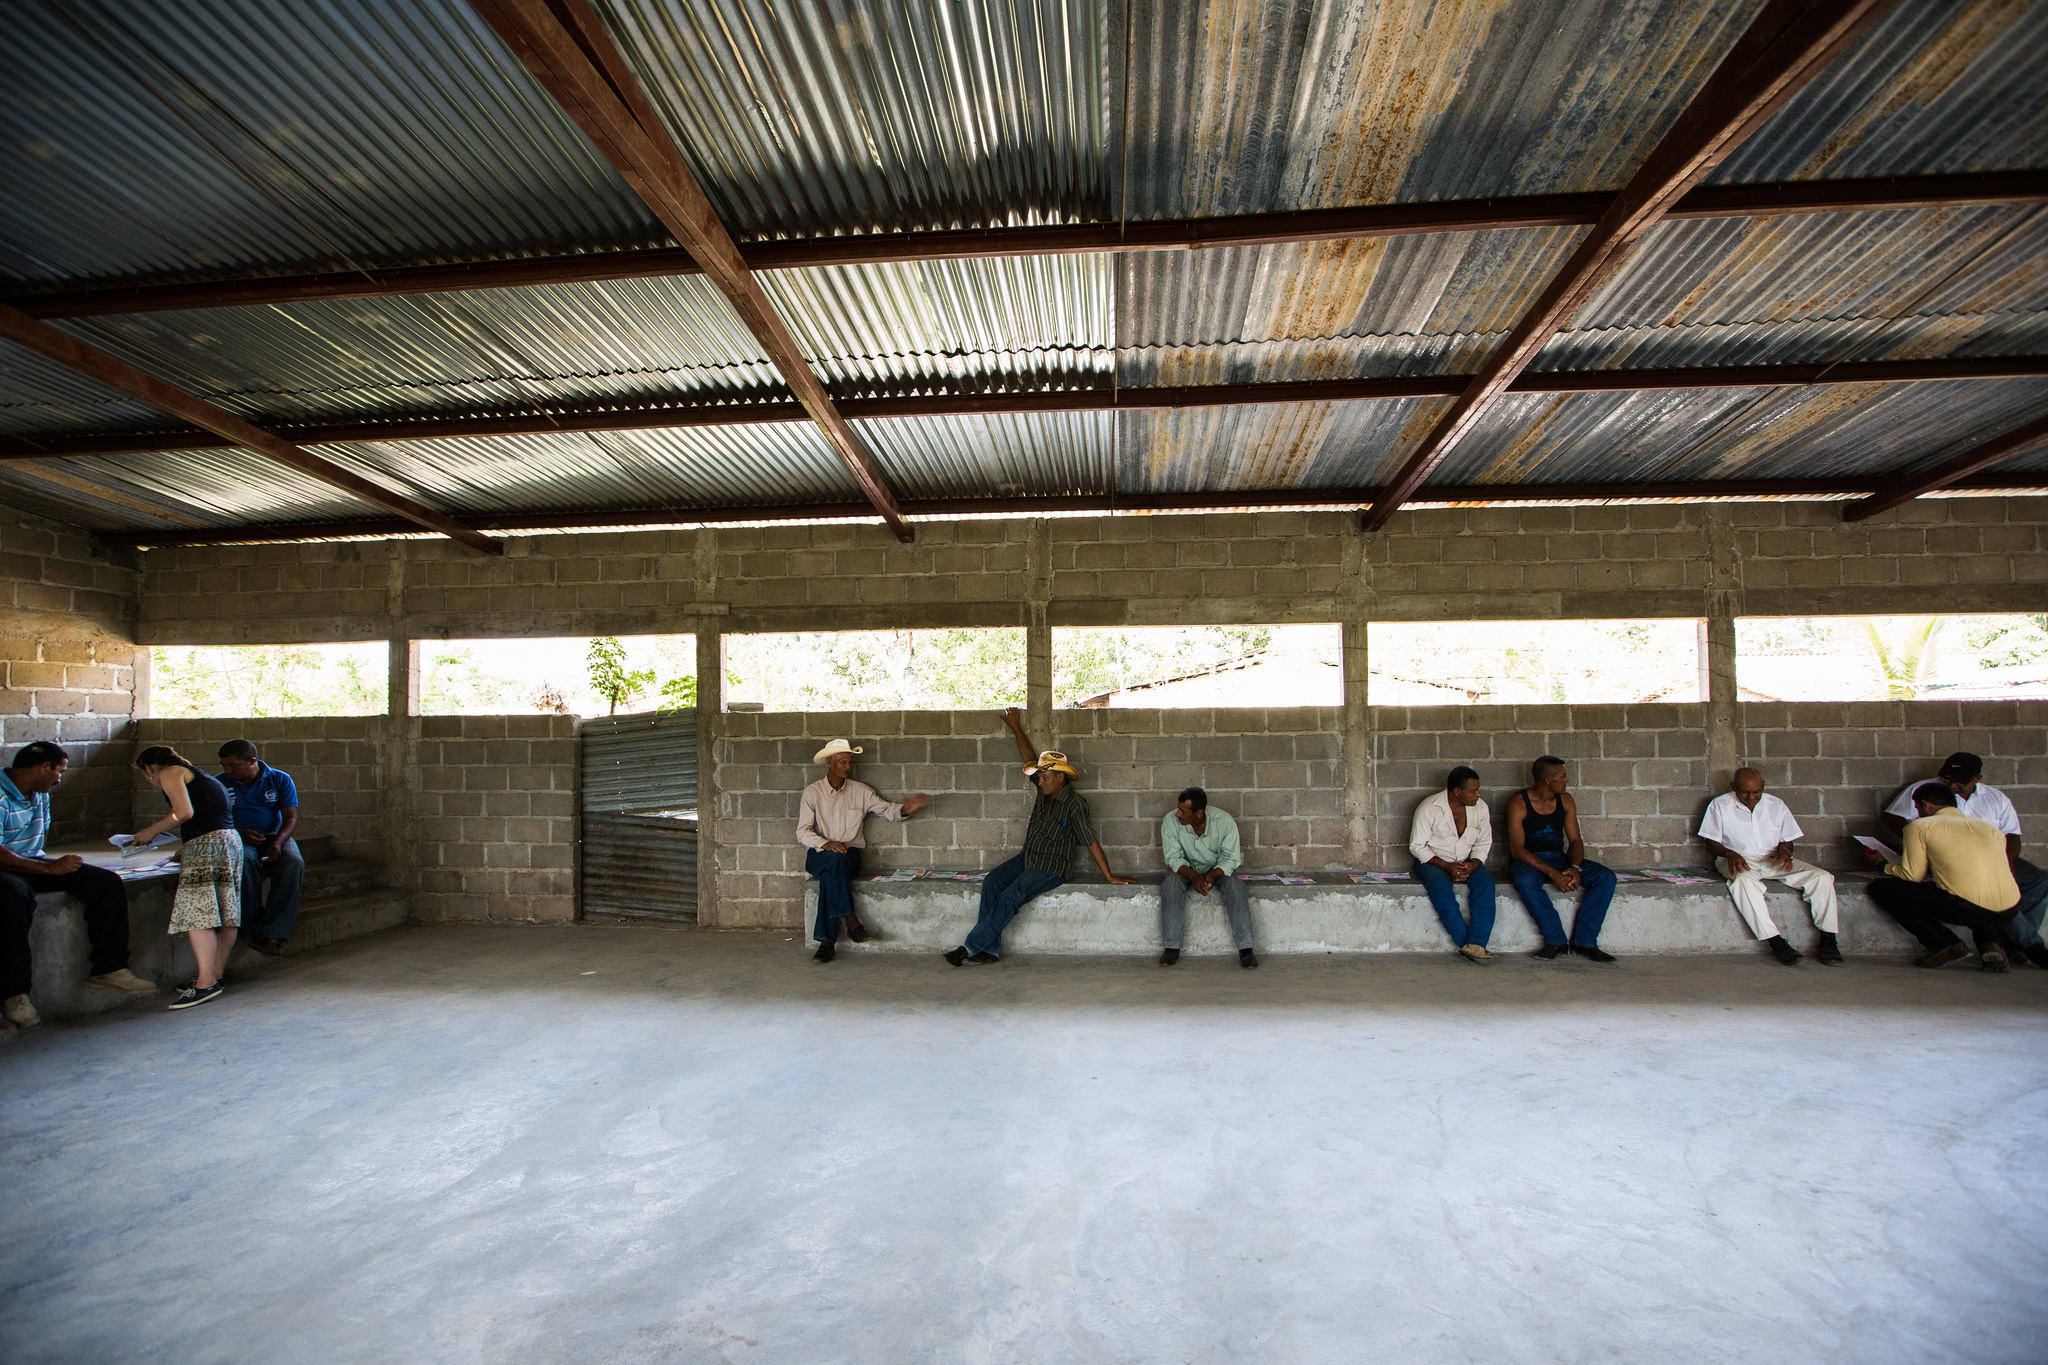 The camera captures a scene inside a community shelter in southern Honduras. In one corner, a index insurance educator bends over maps with two Honduran farmers. Several other farmers are seated across the back wall along a concrete bench, some wearing cowboy hats.